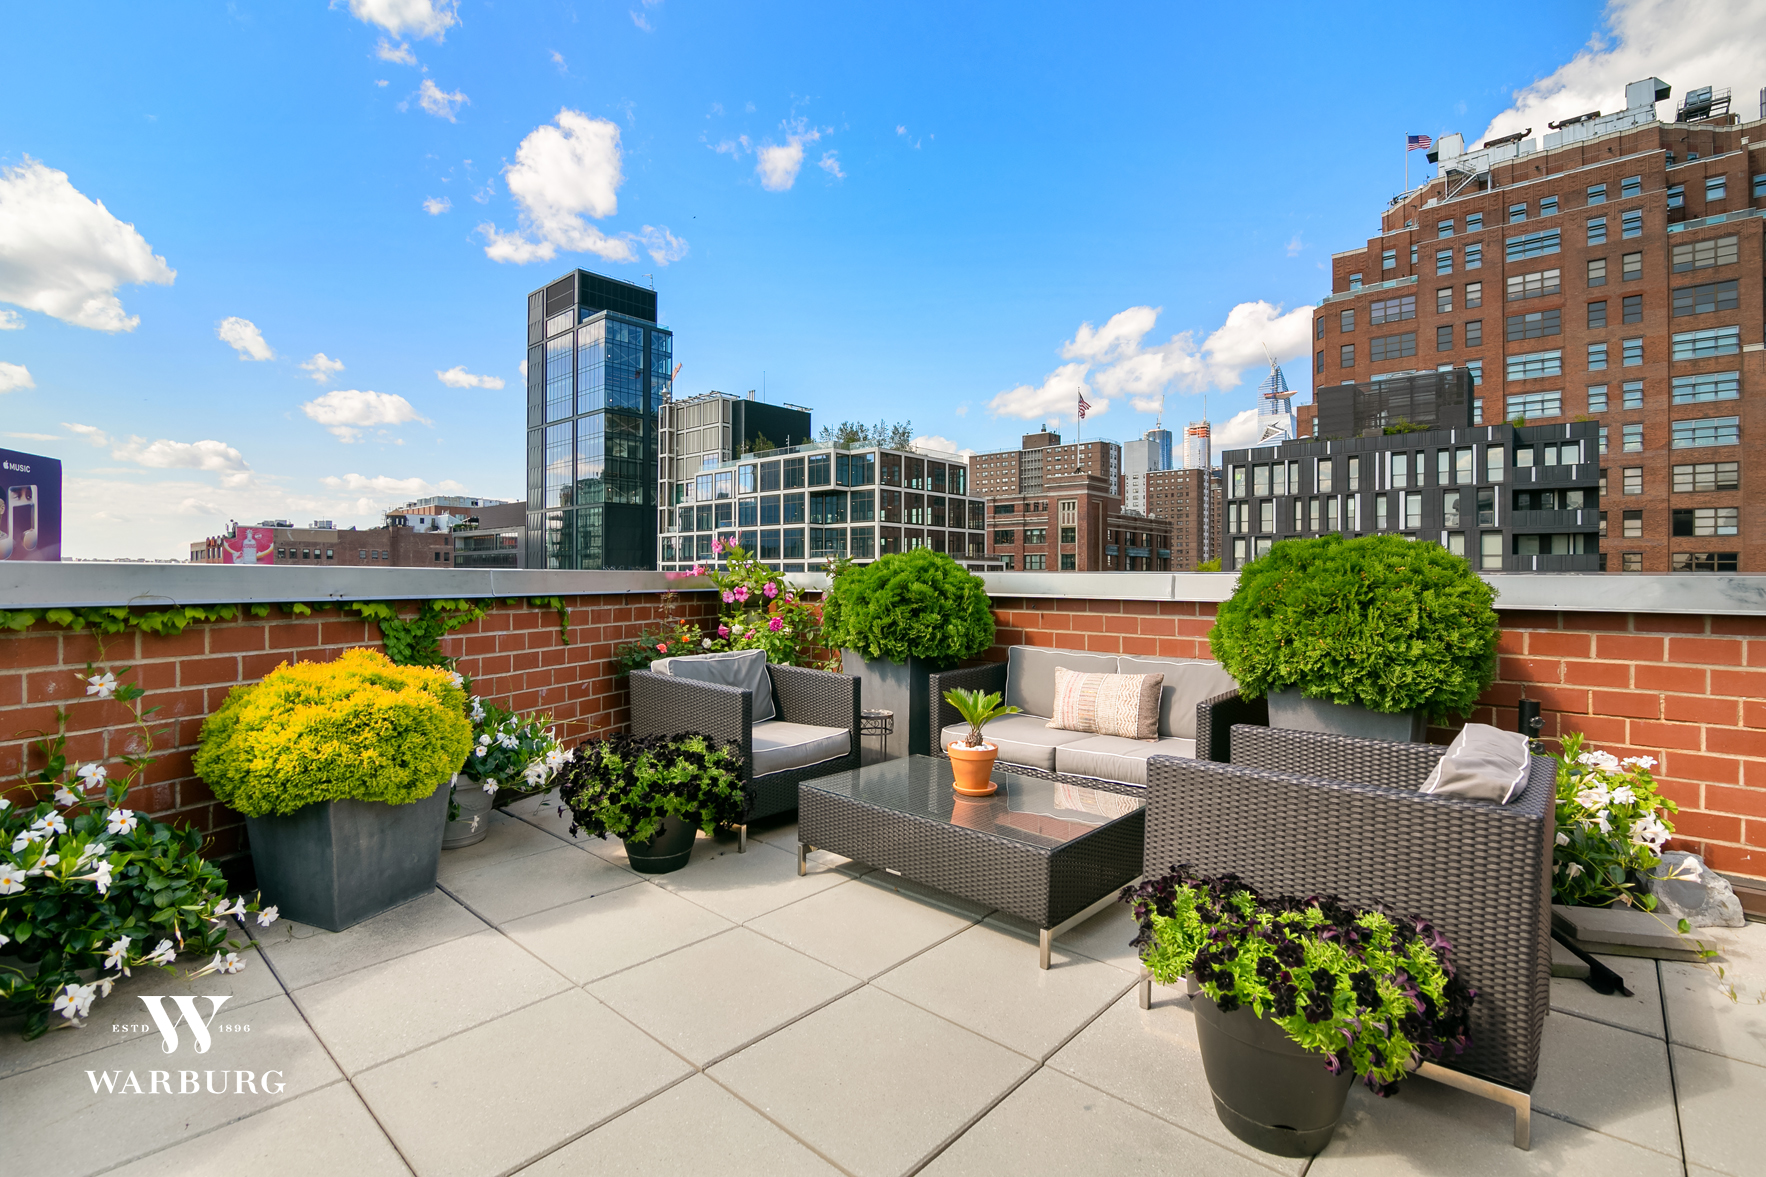 Architect-designed corner duplex penthouse with private outdoor terrace overlooking the West Village, Meatpacking District and Chelsea. In triple-mint condition, PHE captures excellent light with both Northern and Western exposures. 1,750 interior square feet with approximately 755 square feet of exterior terrace space. *Penthouse E is now available to be experienced in both video and via virtual reality tour on most platforms.*    The living and dining area flow together in an open-concept layout which is flexible to your needs. A chef's kitchen with an exterior-vented Thermador hood and range and a windowed home office with a guest bedroom are positioned off the living area. A full bathroom and additional powder room round out the first floor.    Leading up through the striking windowed staircase is the master suite and expansive corner terrace. Equipped with a Nest controlled environment, the master suite has a walk-in closet fully outfitted with built-in cabinetry, along with a bright and airy master bathroom featuring dual vanities and exit to the terrace. An additional half-bathroom is positioned off the master suite, with a fully vented washer and dryer housed in its own adjoining closet. The 775 square-foot planted terrace is meticulously planted with mature landscape, and captures sweeping vistas of the area.    The Village Pointe is a pet-friendly elevator condominium building with an excellent superintendent, and incredibly low monthlies. Village Pointe is located in the epicenter of technology, fashion, hospitality, and culture. SoHo House, Chelsea Market, Google, Whitney Museum, the Standard and the High Line are just some of the area's staples. Striking new residential and commercial developments including Pier 55, 61 Ninth Avenue and the Solar Carve building continue to improve infrastructure and design in the area. And more, ongoing restoration of public spaces including Gansevoort Plaza, Chelsea Triangle and 14th Street Plaza South are directly enha